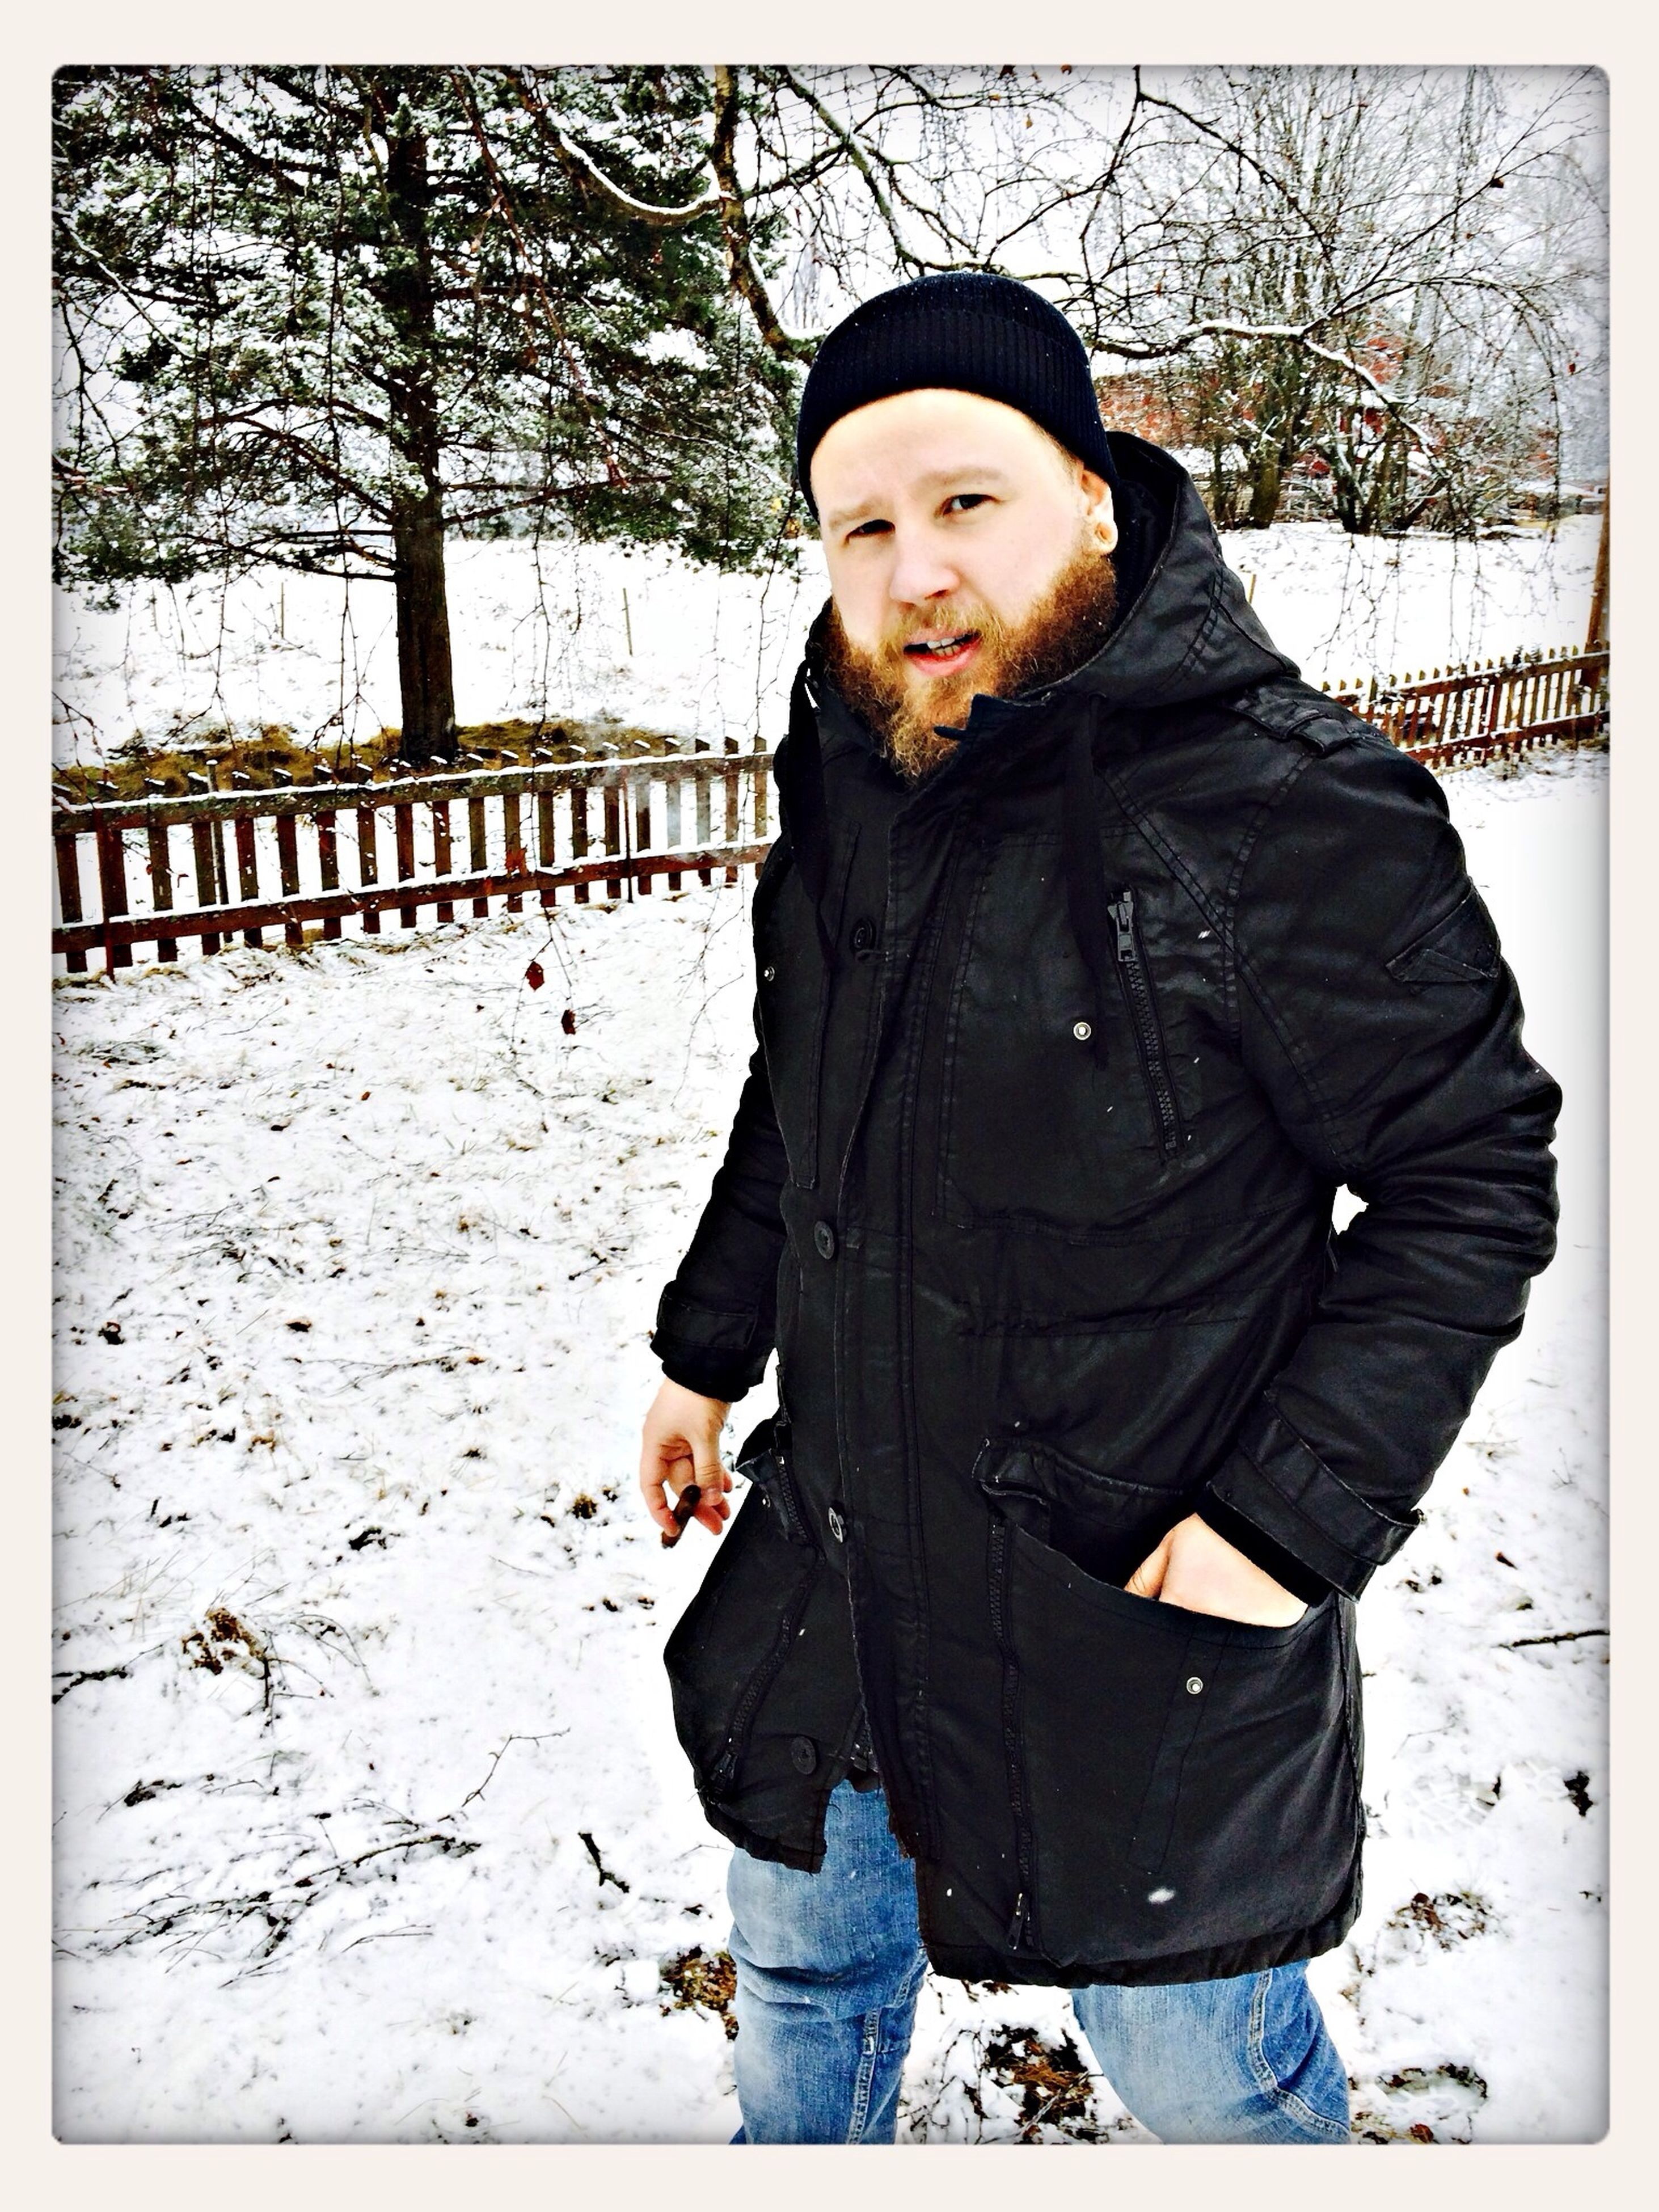 transfer print, lifestyles, person, looking at camera, warm clothing, winter, portrait, casual clothing, leisure activity, snow, front view, cold temperature, season, auto post production filter, standing, full length, bare tree, smiling